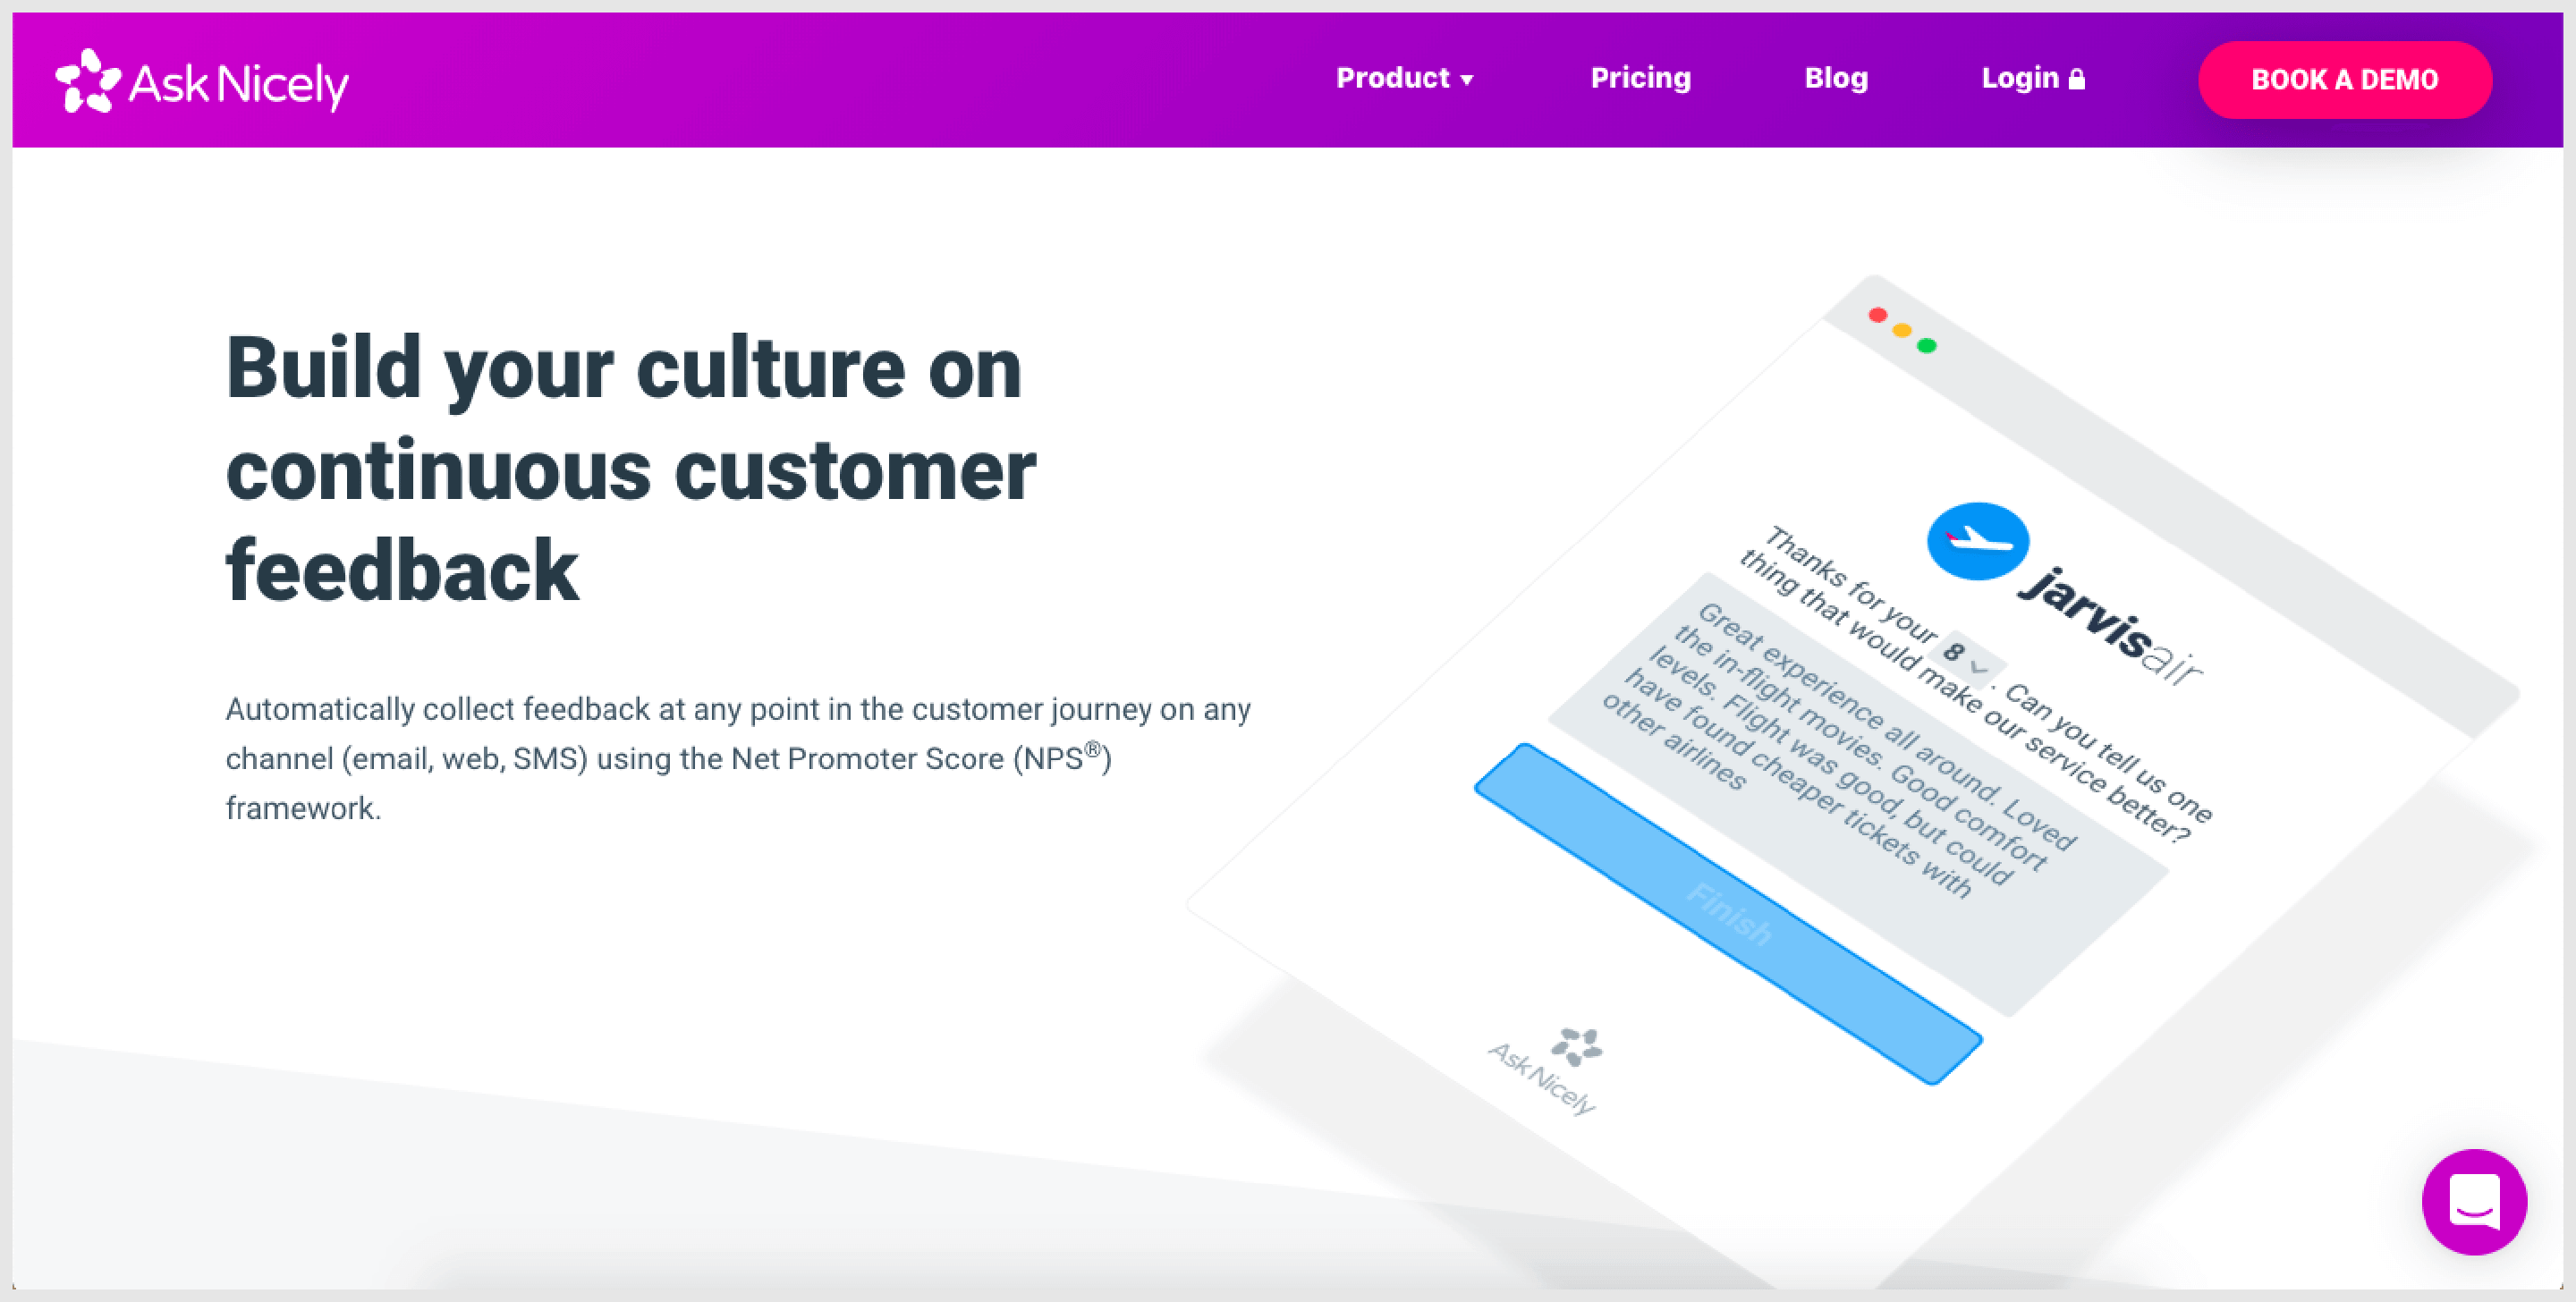 AskNicely is a platform that primarily measures NPS, the industry standard for measuring loyalty and predicting growth.